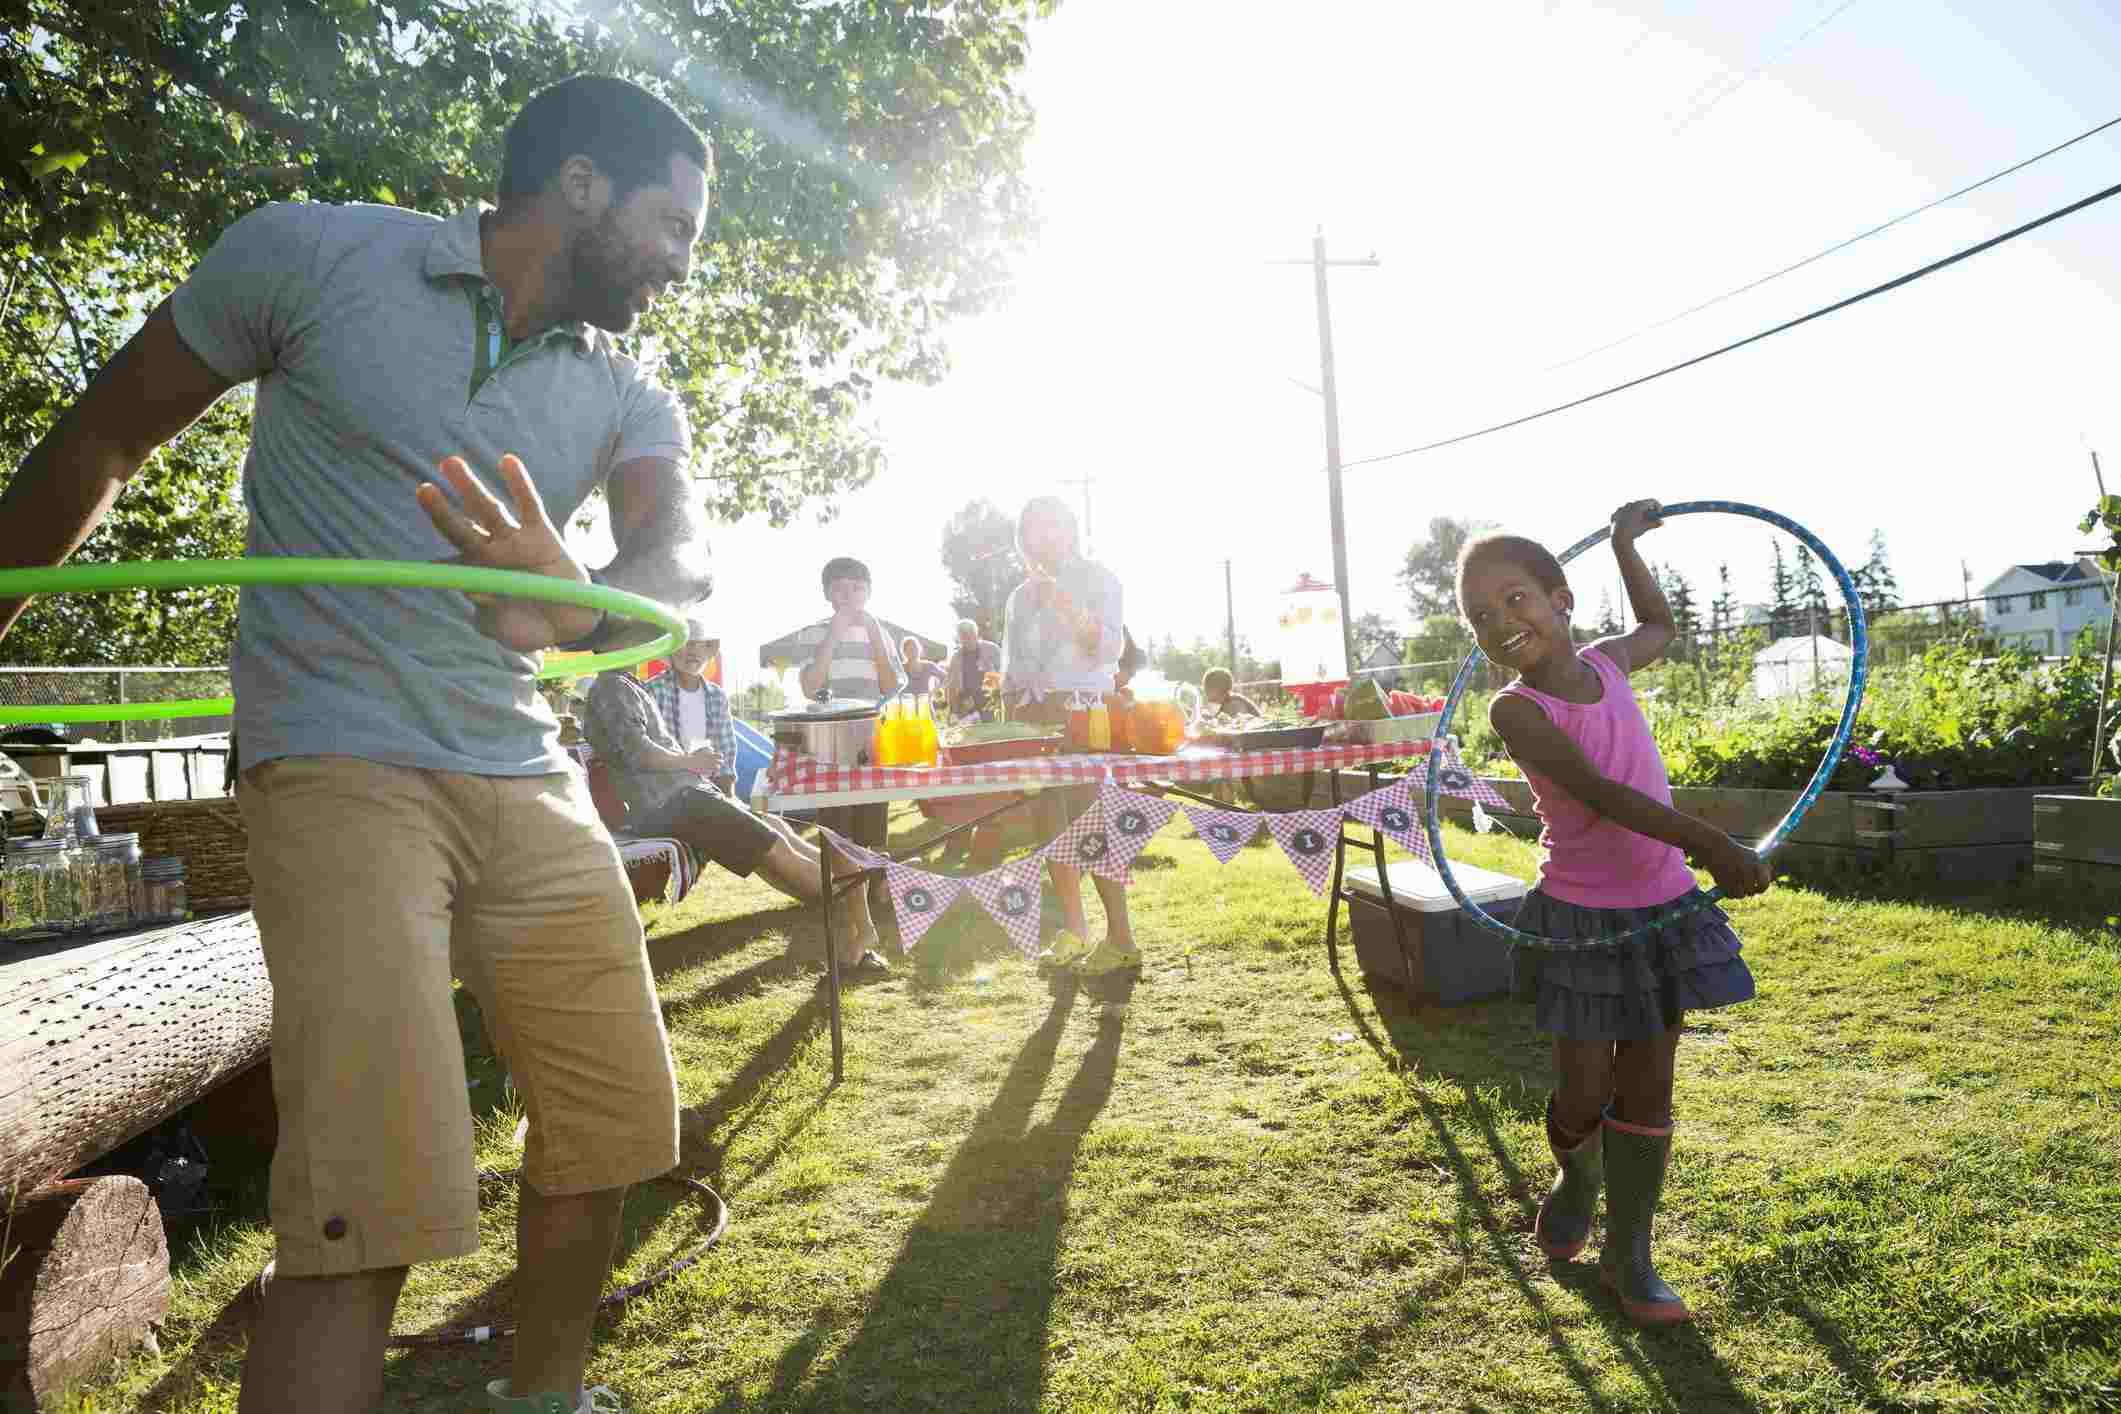 Father and daughter hula-hooping